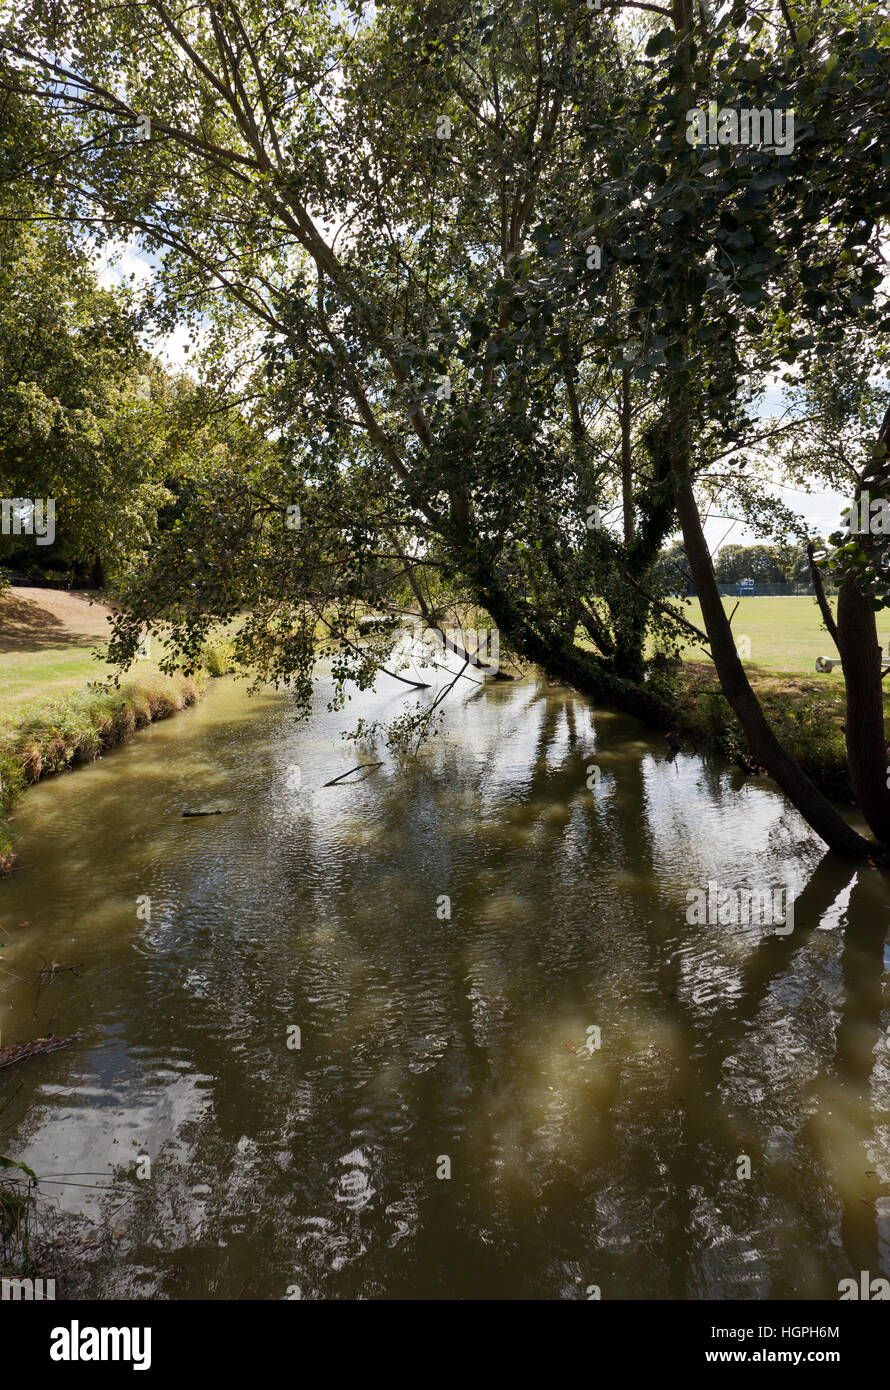 View of the Delf Stream, The Butts, Sandwich, Kent - Stock Image